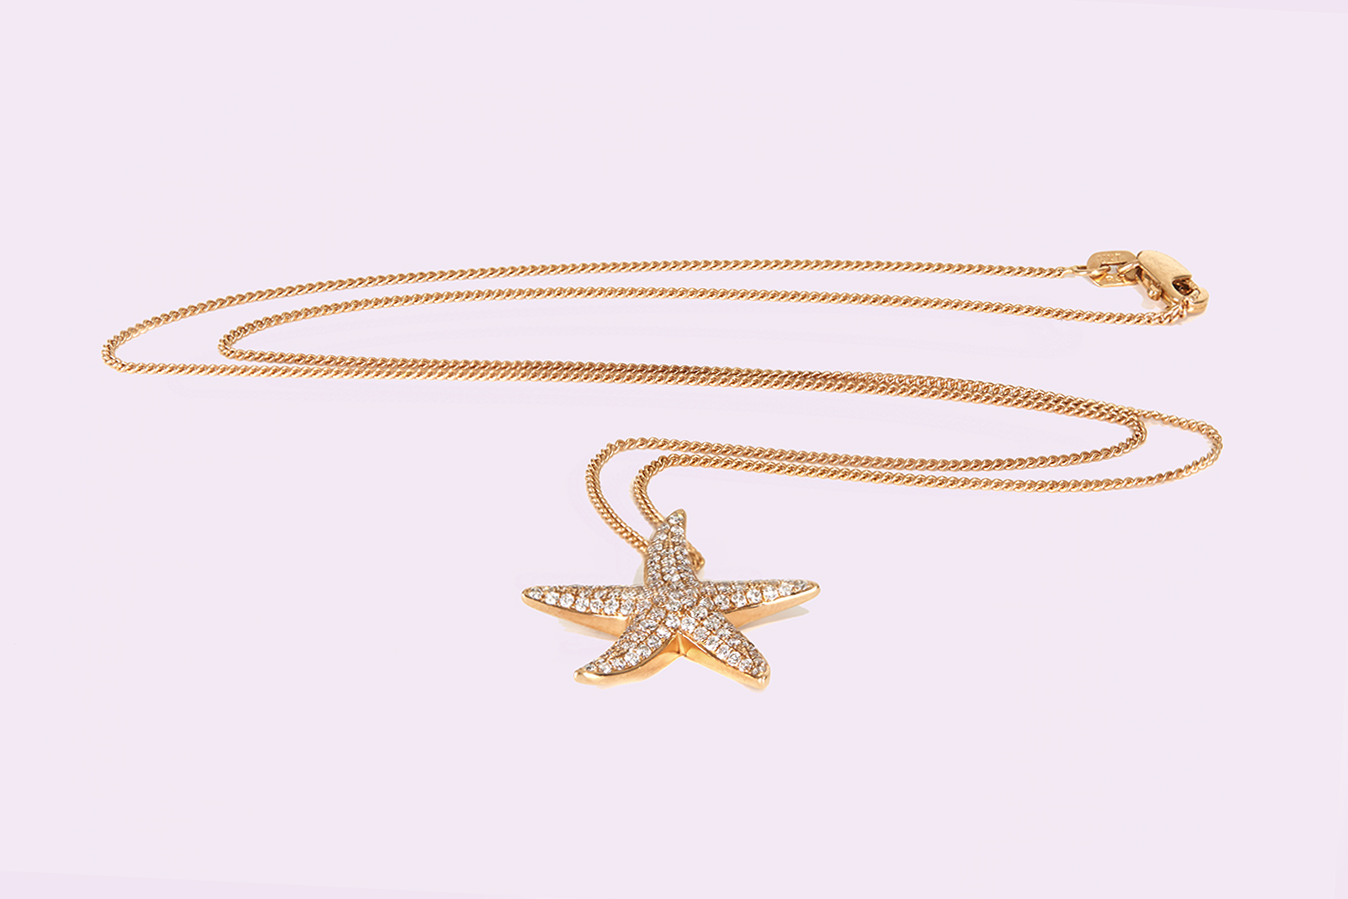 Starfish pendant on gold necklace